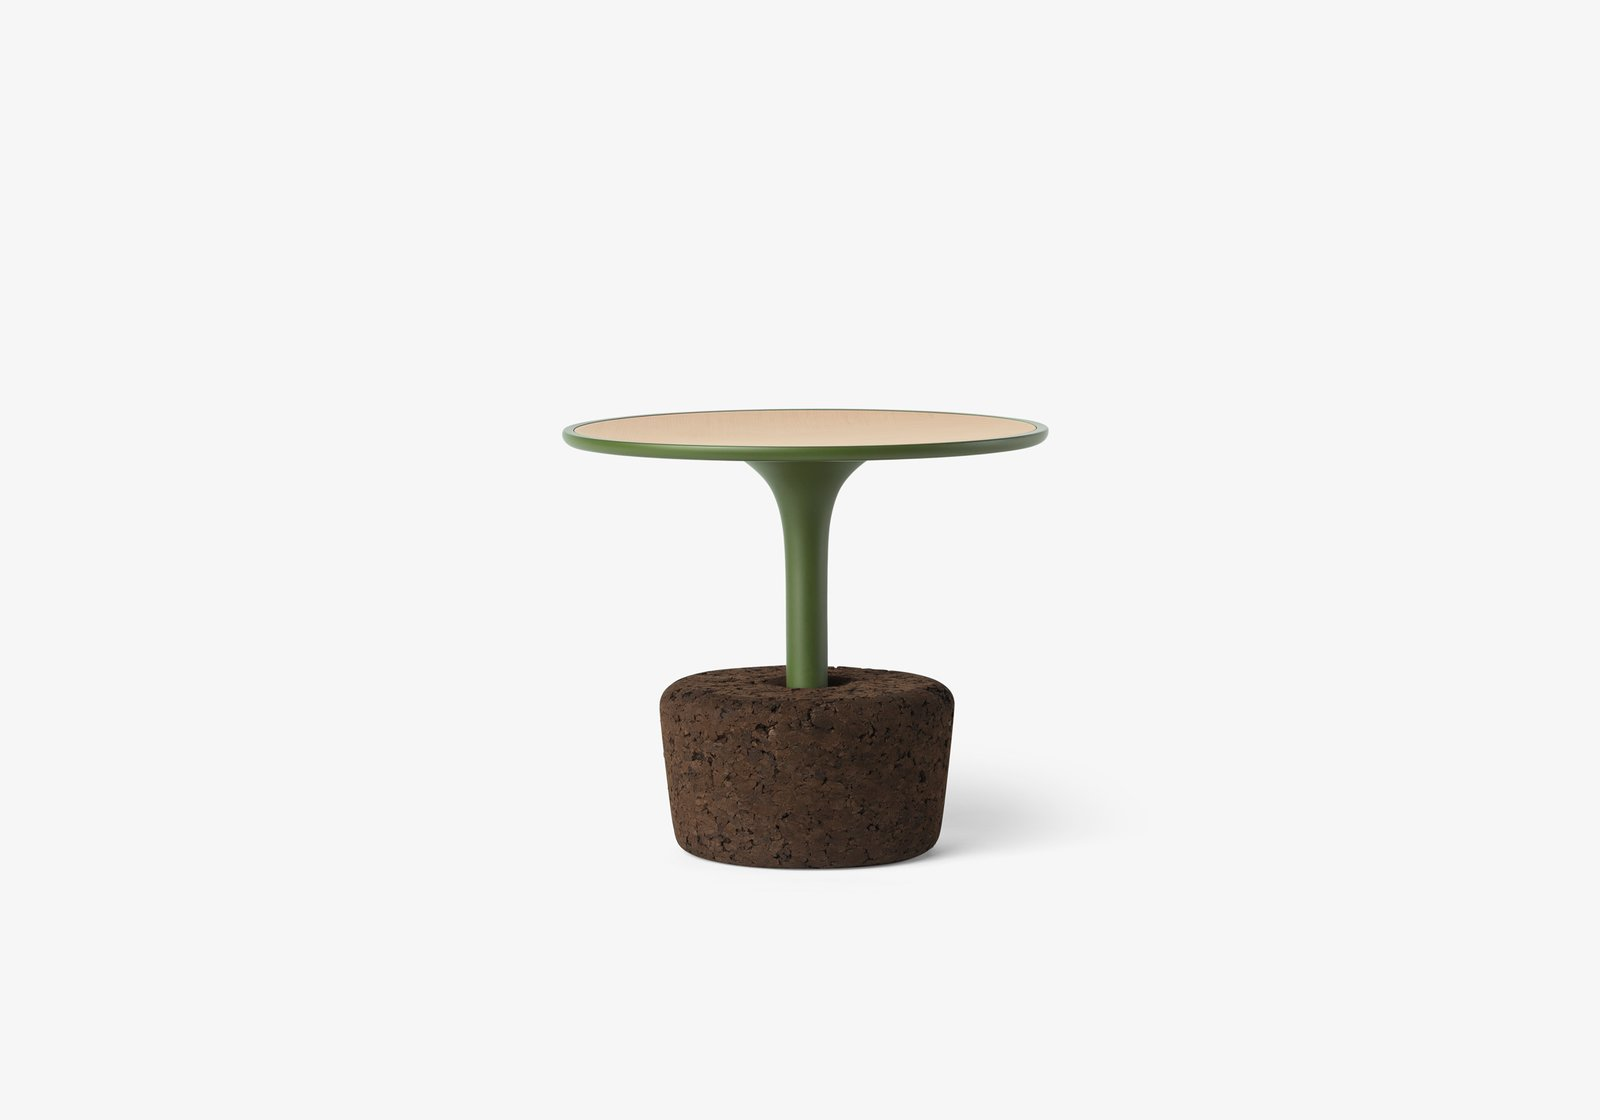 "Flora Small Low  FLORA is a set of coffee tables that refers to the plants we offer to the ones we love, so there is a similarity between taking care of plants and taking care of the objects. These versatile tables combine natural materials, with four sizes and six different colored frame finishes and may be used separately or together.  Size  Ø40 x H35 cm / Ø15,7'' x H14''.  Weight  4,3 kg / 9,5 lbs.   Search ""신도림출장안마【Ø1Ø↔⑥445↔⑨663】⊀후불결제⊁ 신도림출장아가씨з신도림콜걸출장안마후기 【이쁜이들】신도림출장마사지콜걸 신도림출장샵강추 신도림출장안마모텔7신도림출장안마후기"" from Floras"